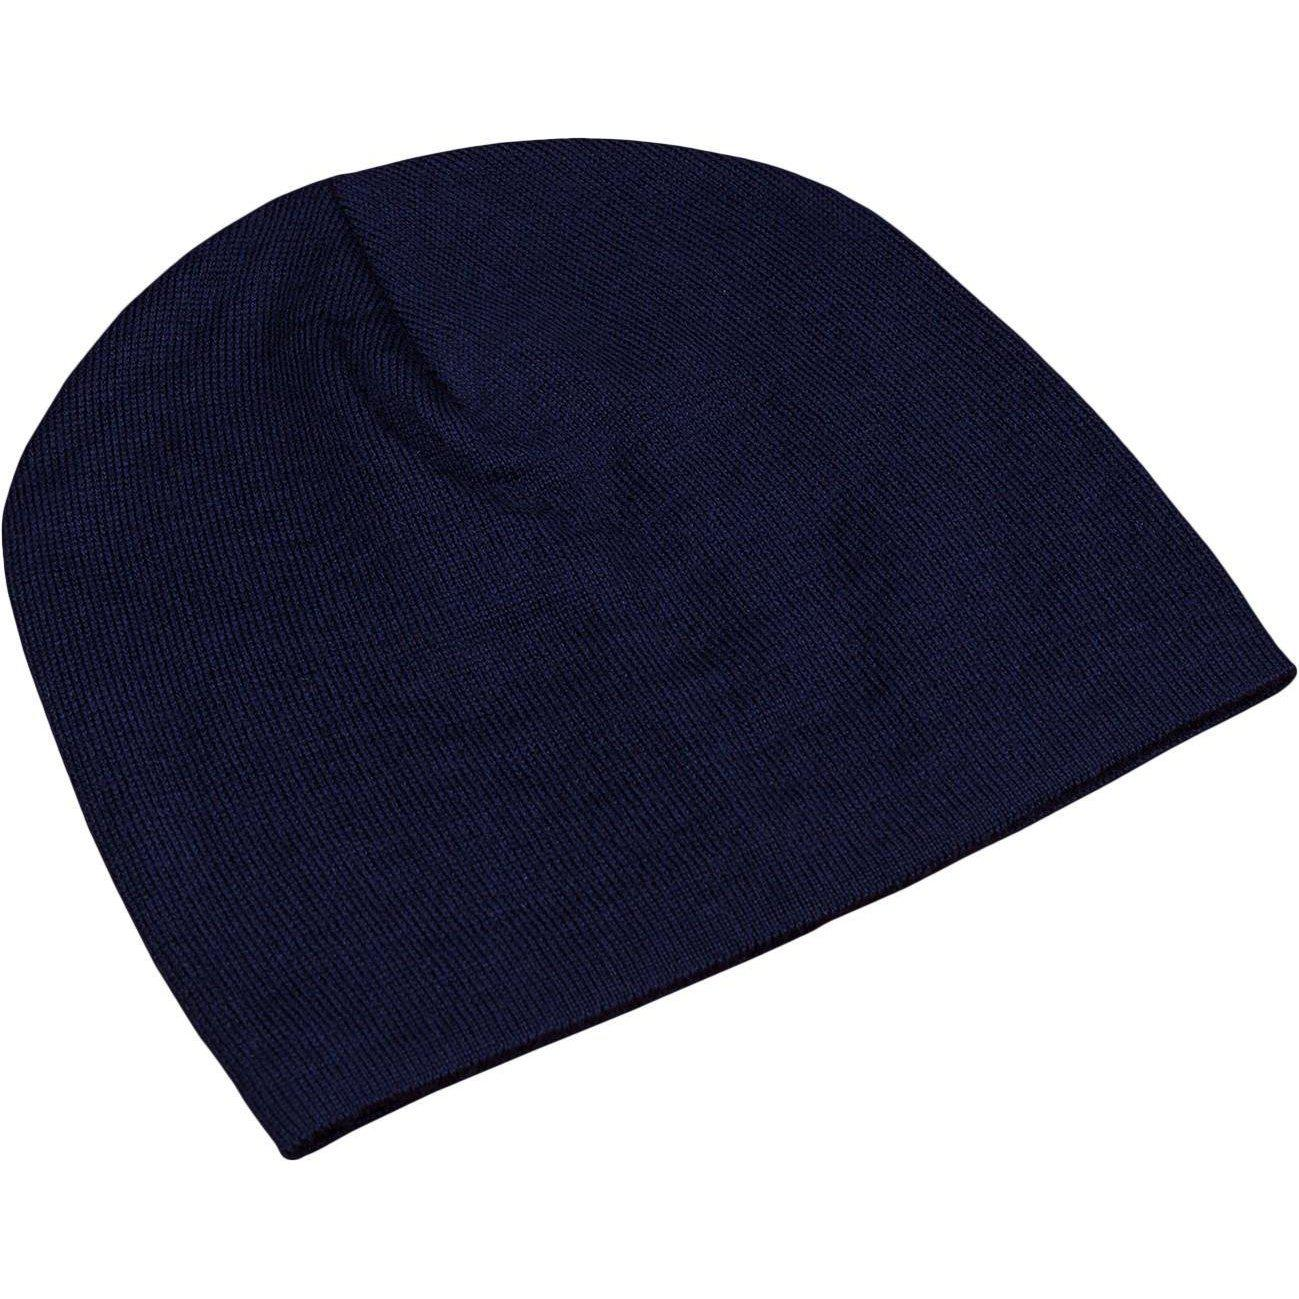 Chpt3-Chpt3 1.55 Beanie-Outer Space-UNI-CST92001390748-saddleback-elite-performance-cycling